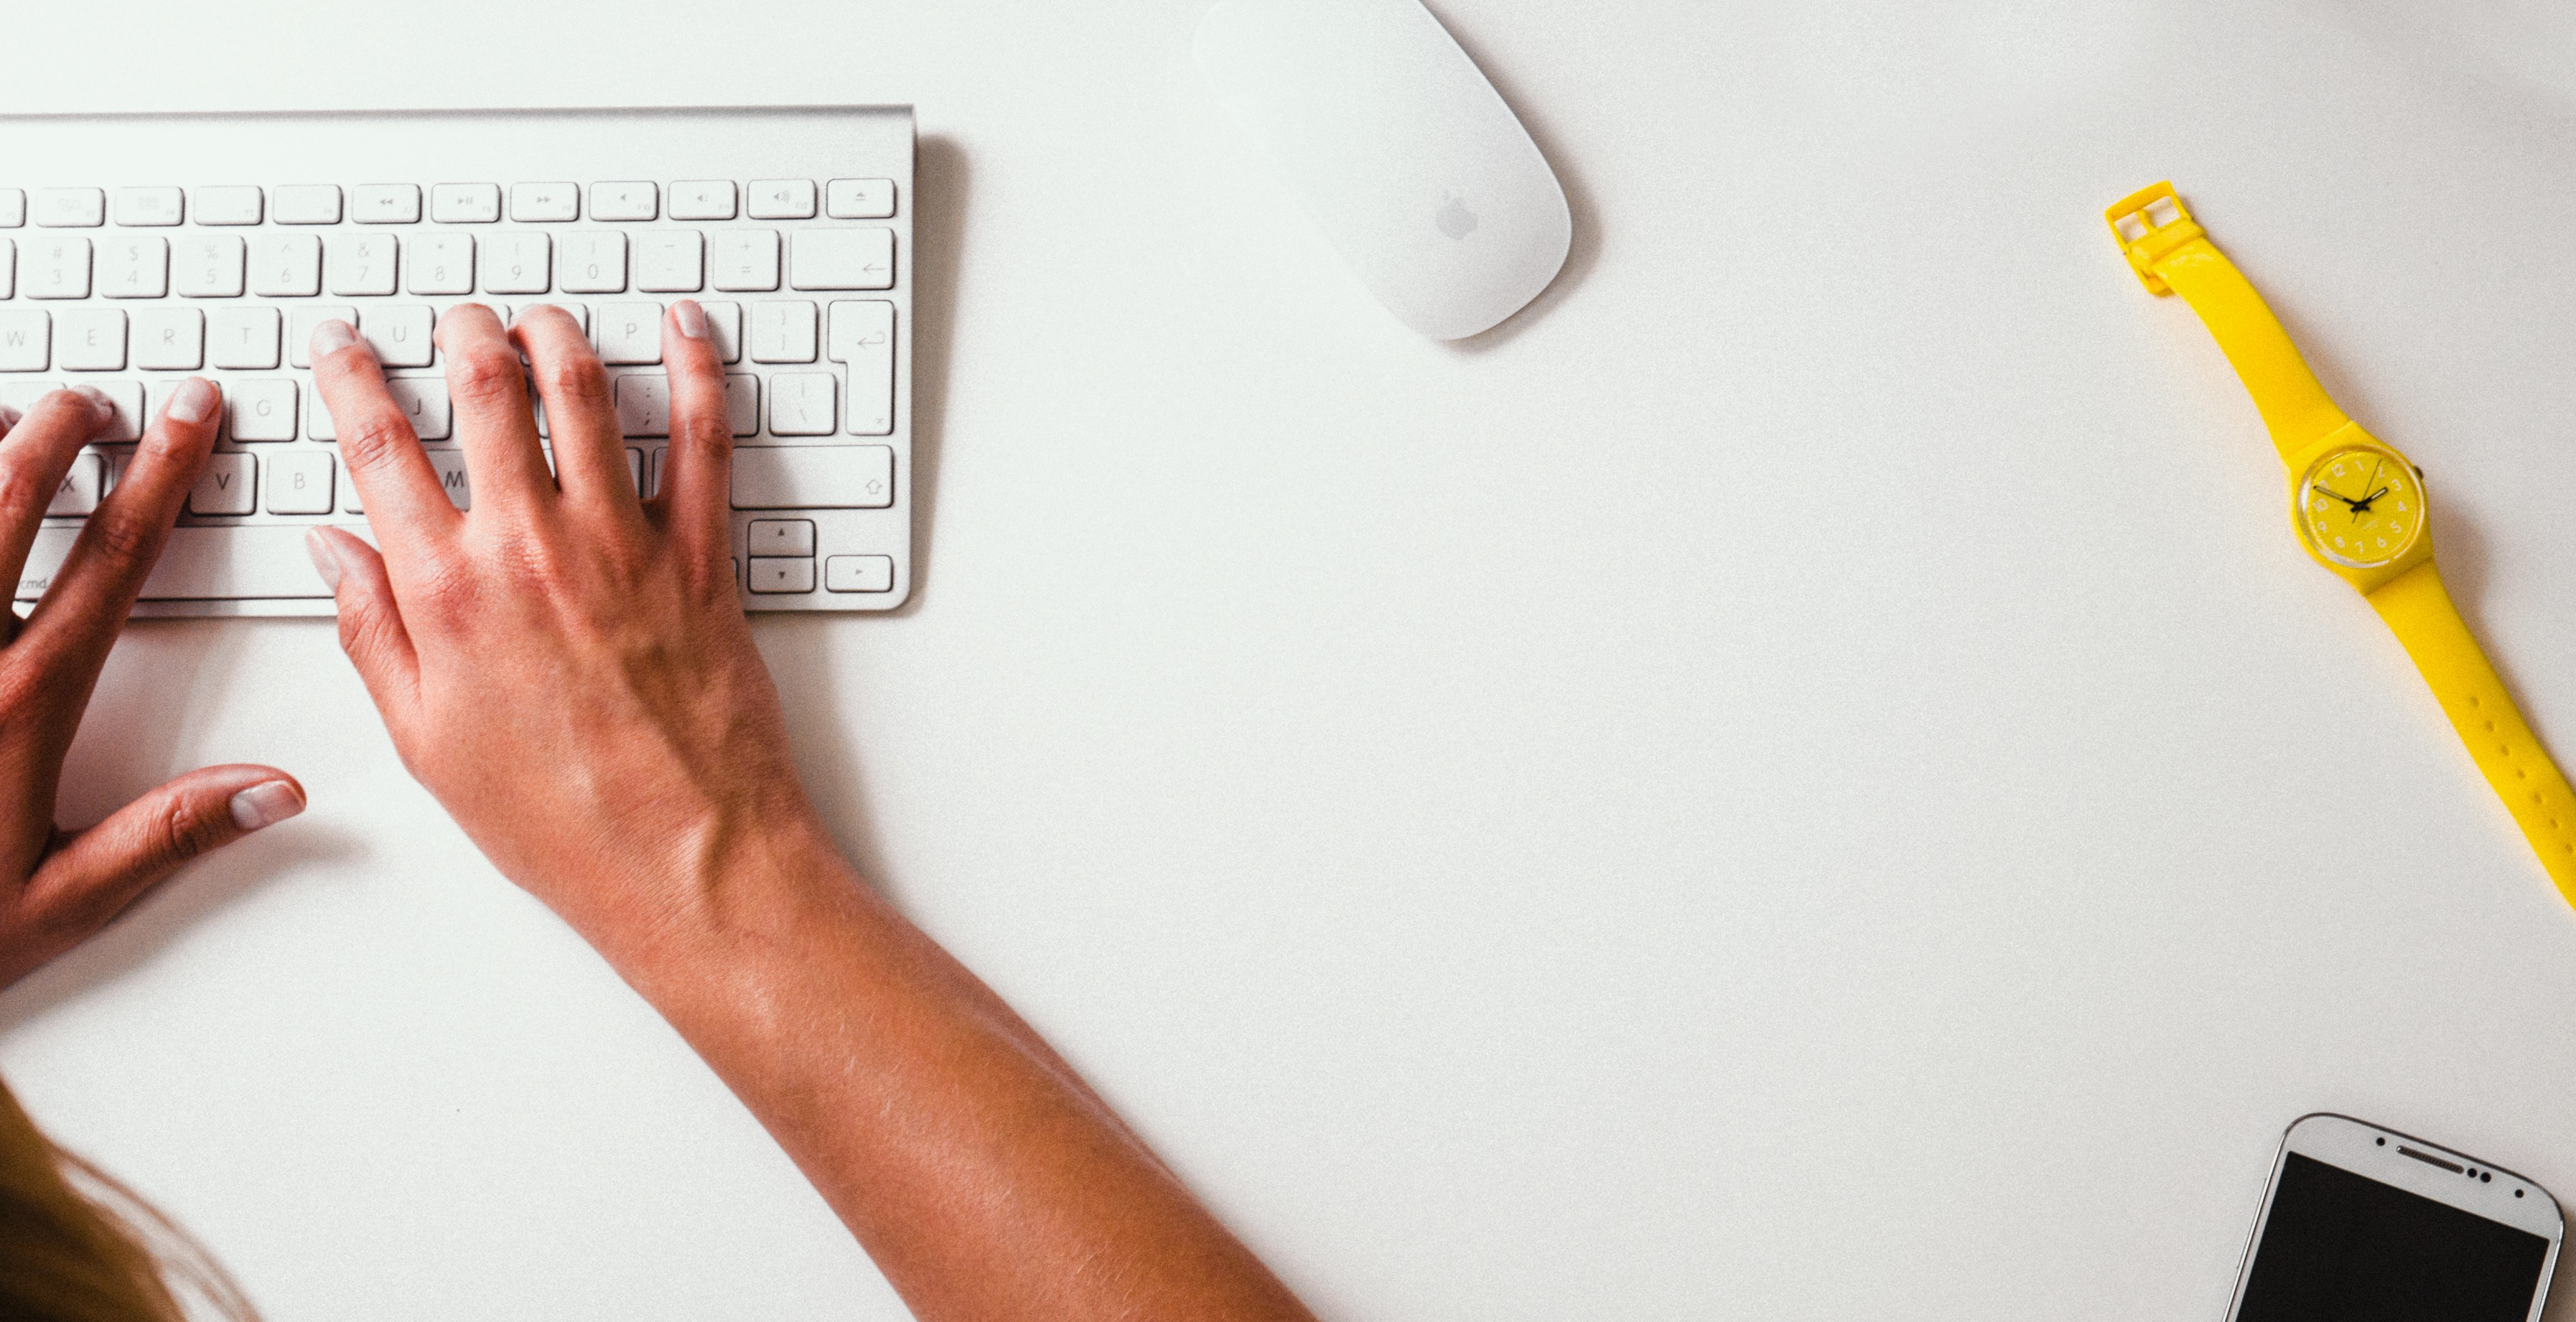 A top-down photo of a person's hands on top of a white keyboard